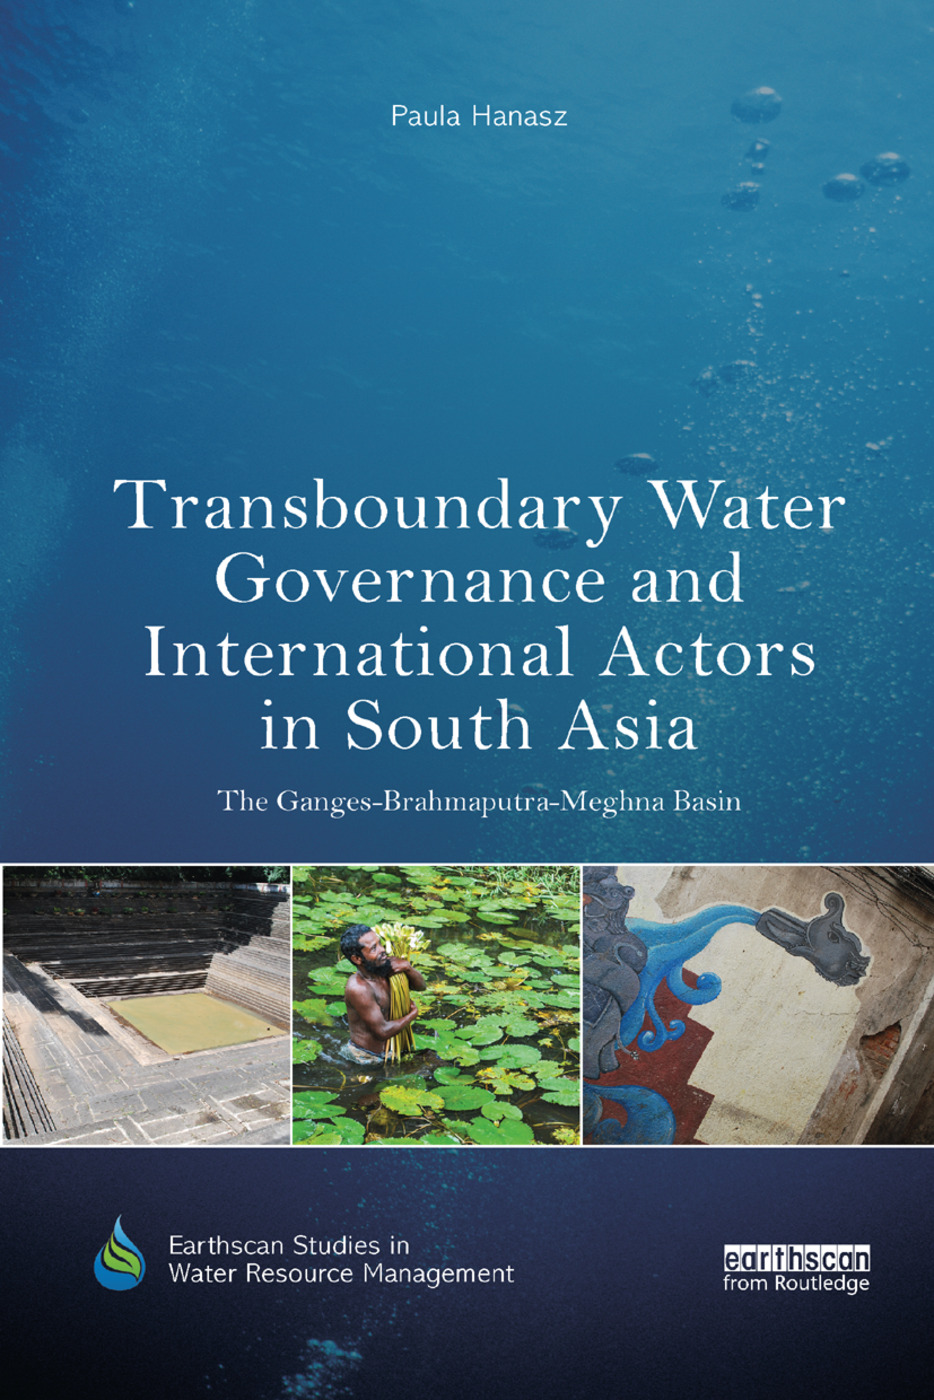 Transboundary Water Governance and International Actors in South Asia: The Ganges-Brahmaputra-Meghna Basin, 1st Edition (Paperback) book cover